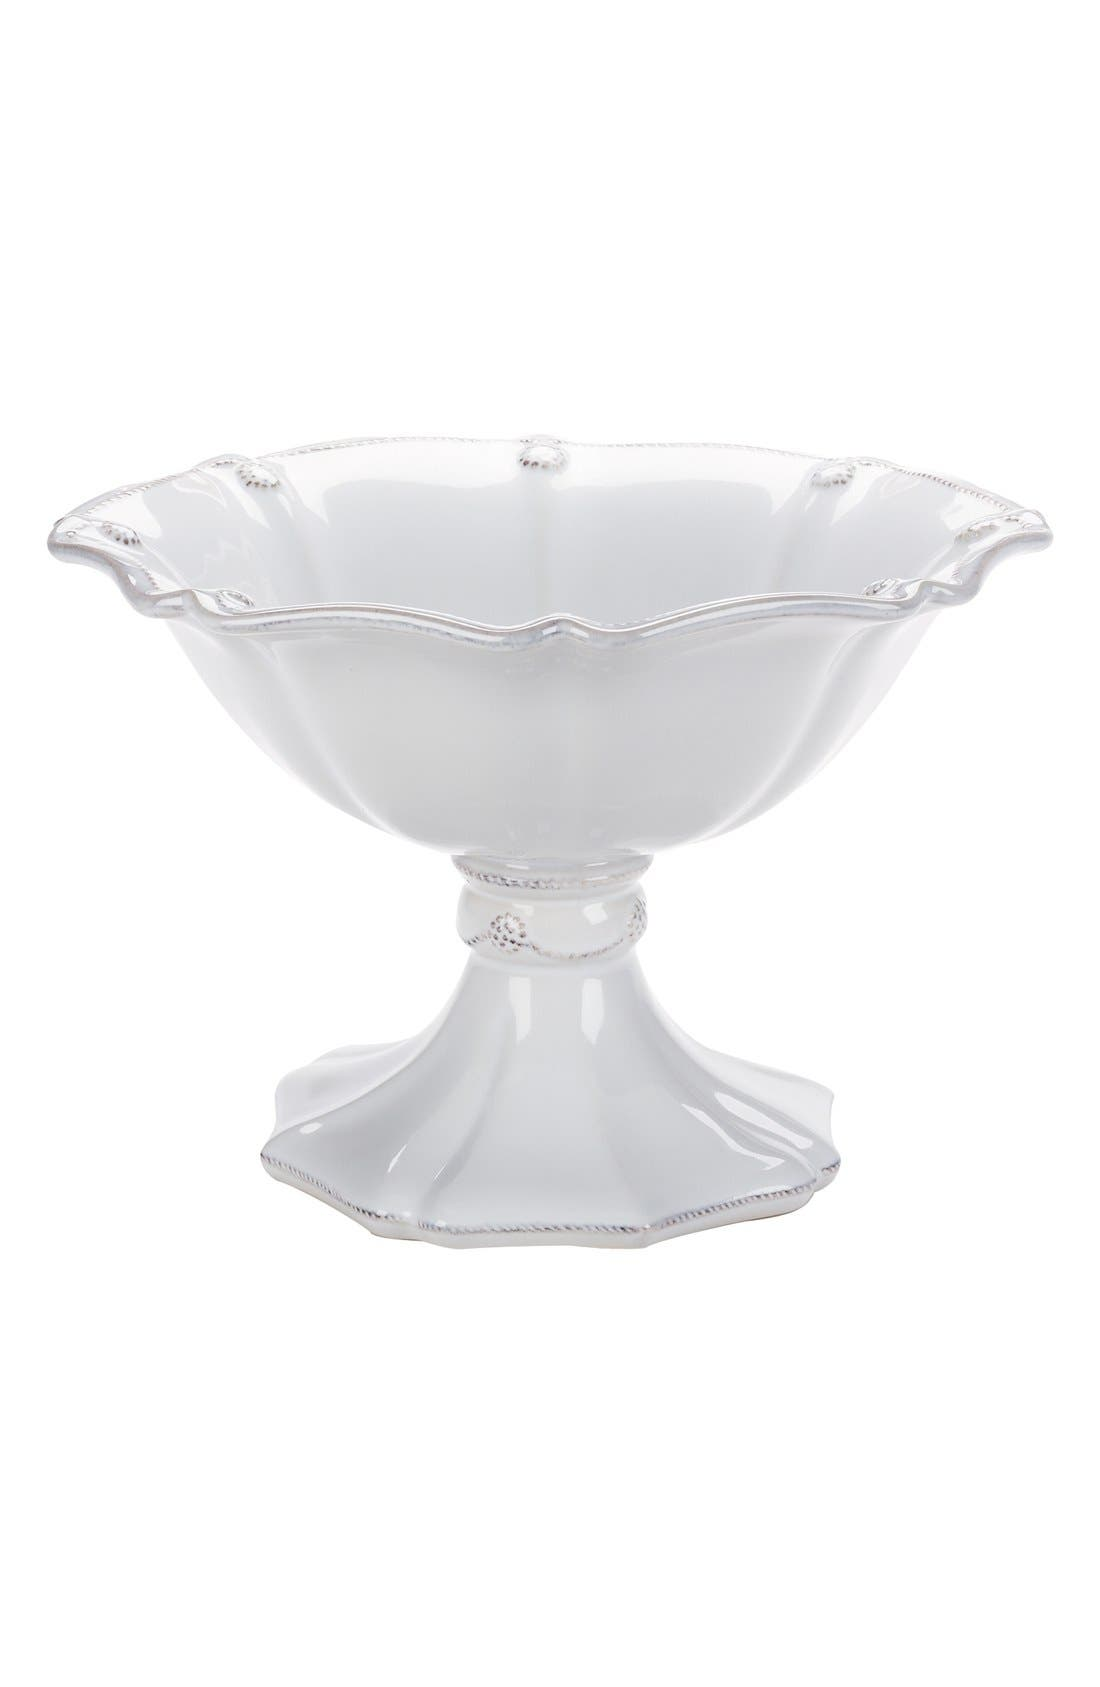 JULISKA 'Berry and Thread' Ceramic Footed Round Compote